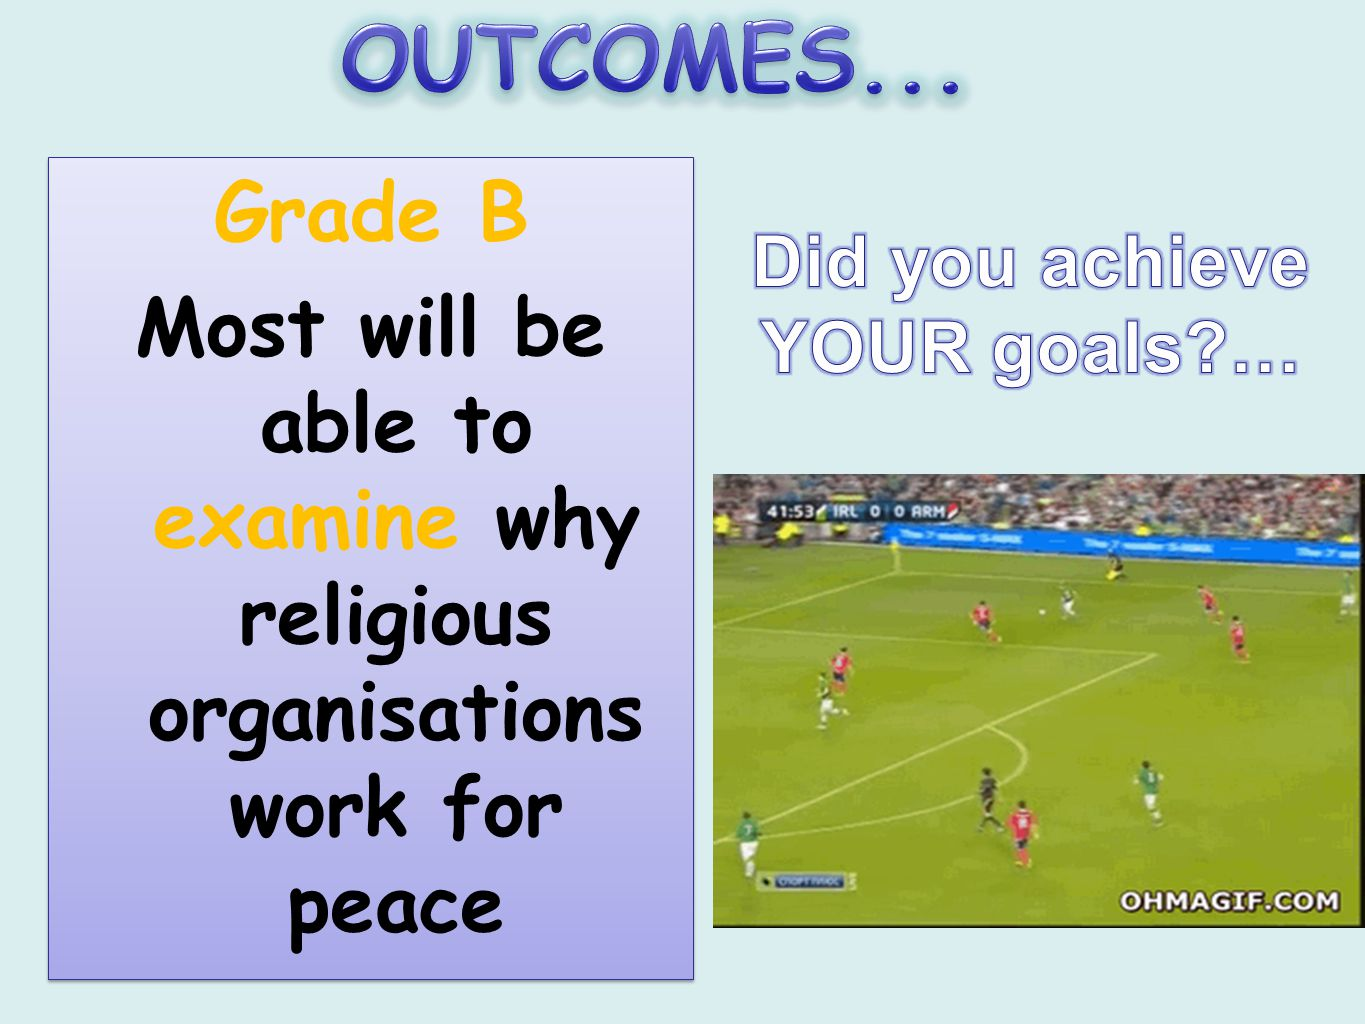 Grade B Most will be able to examine why religious organisations work for peace Grade B Most will be able to examine why religious organisations work for peace